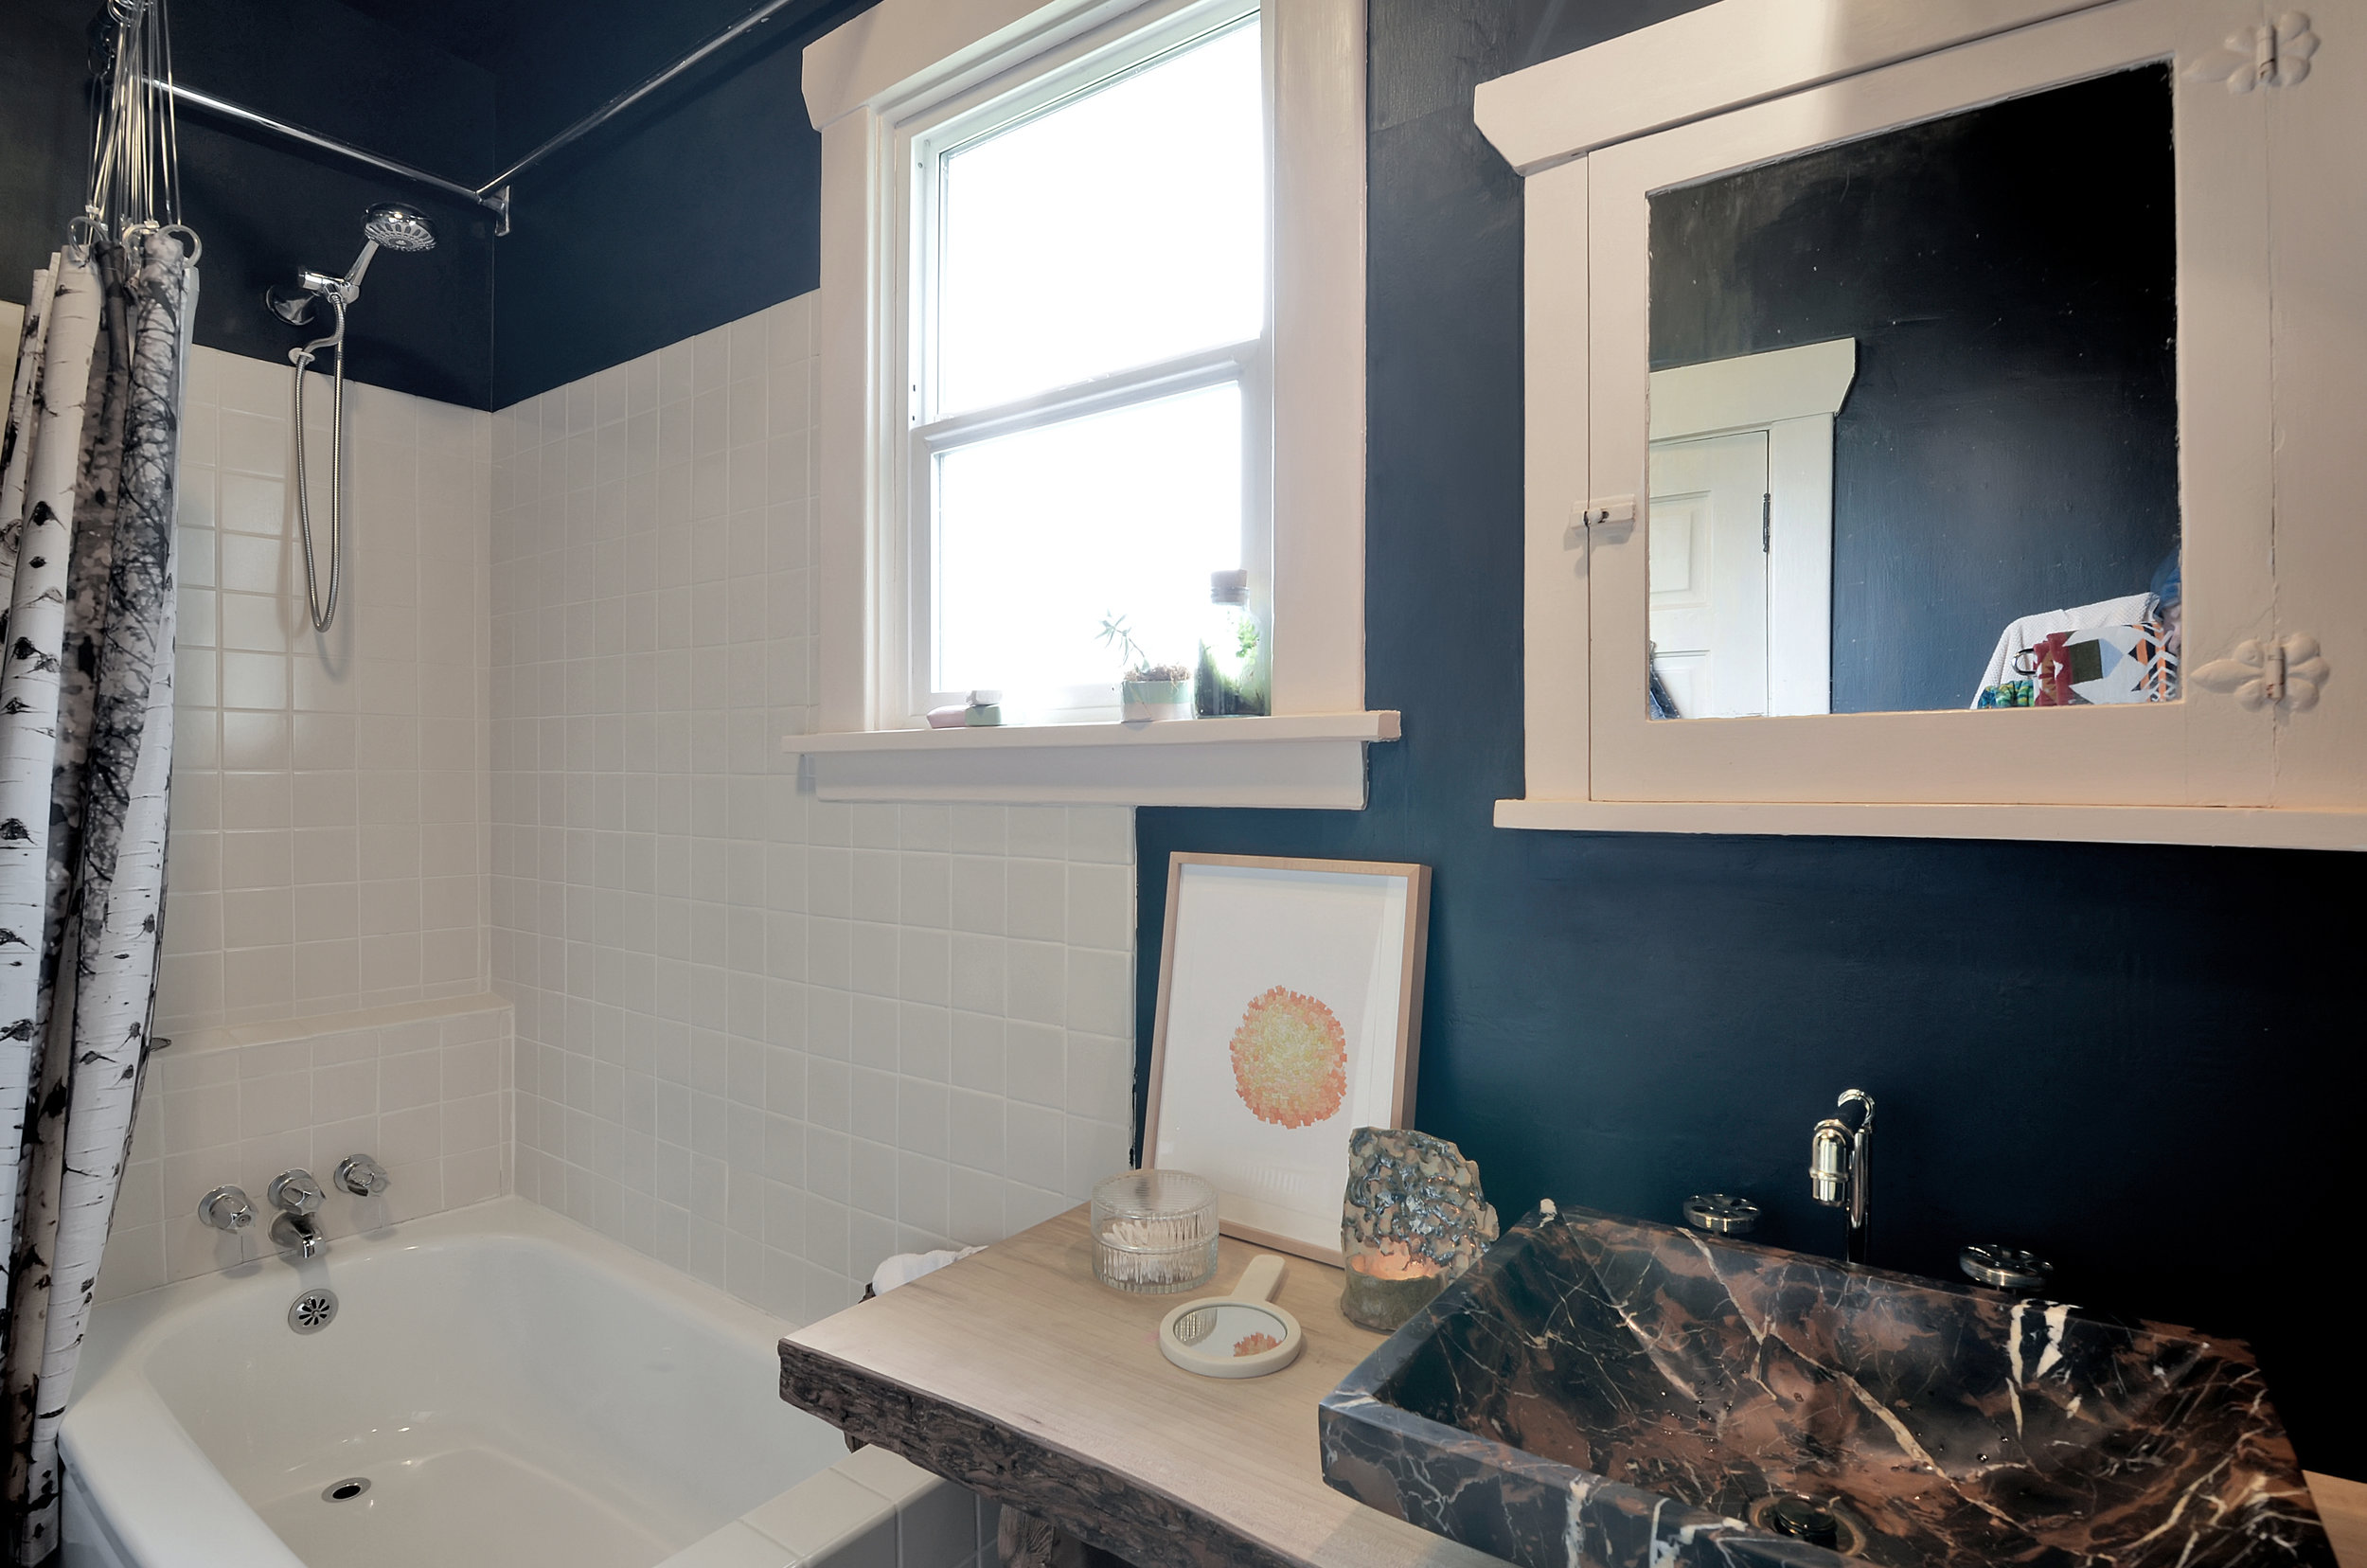 The renovated full bath is located on the main floor and features white tile, refinished fir floors, and a live-edge wooden counter with a stone vessel sink. This isn't your basic bathroom. It has style that combines rusticity with polish, light and warmth with beautiful moody shadow. As you can tell, we really like it.